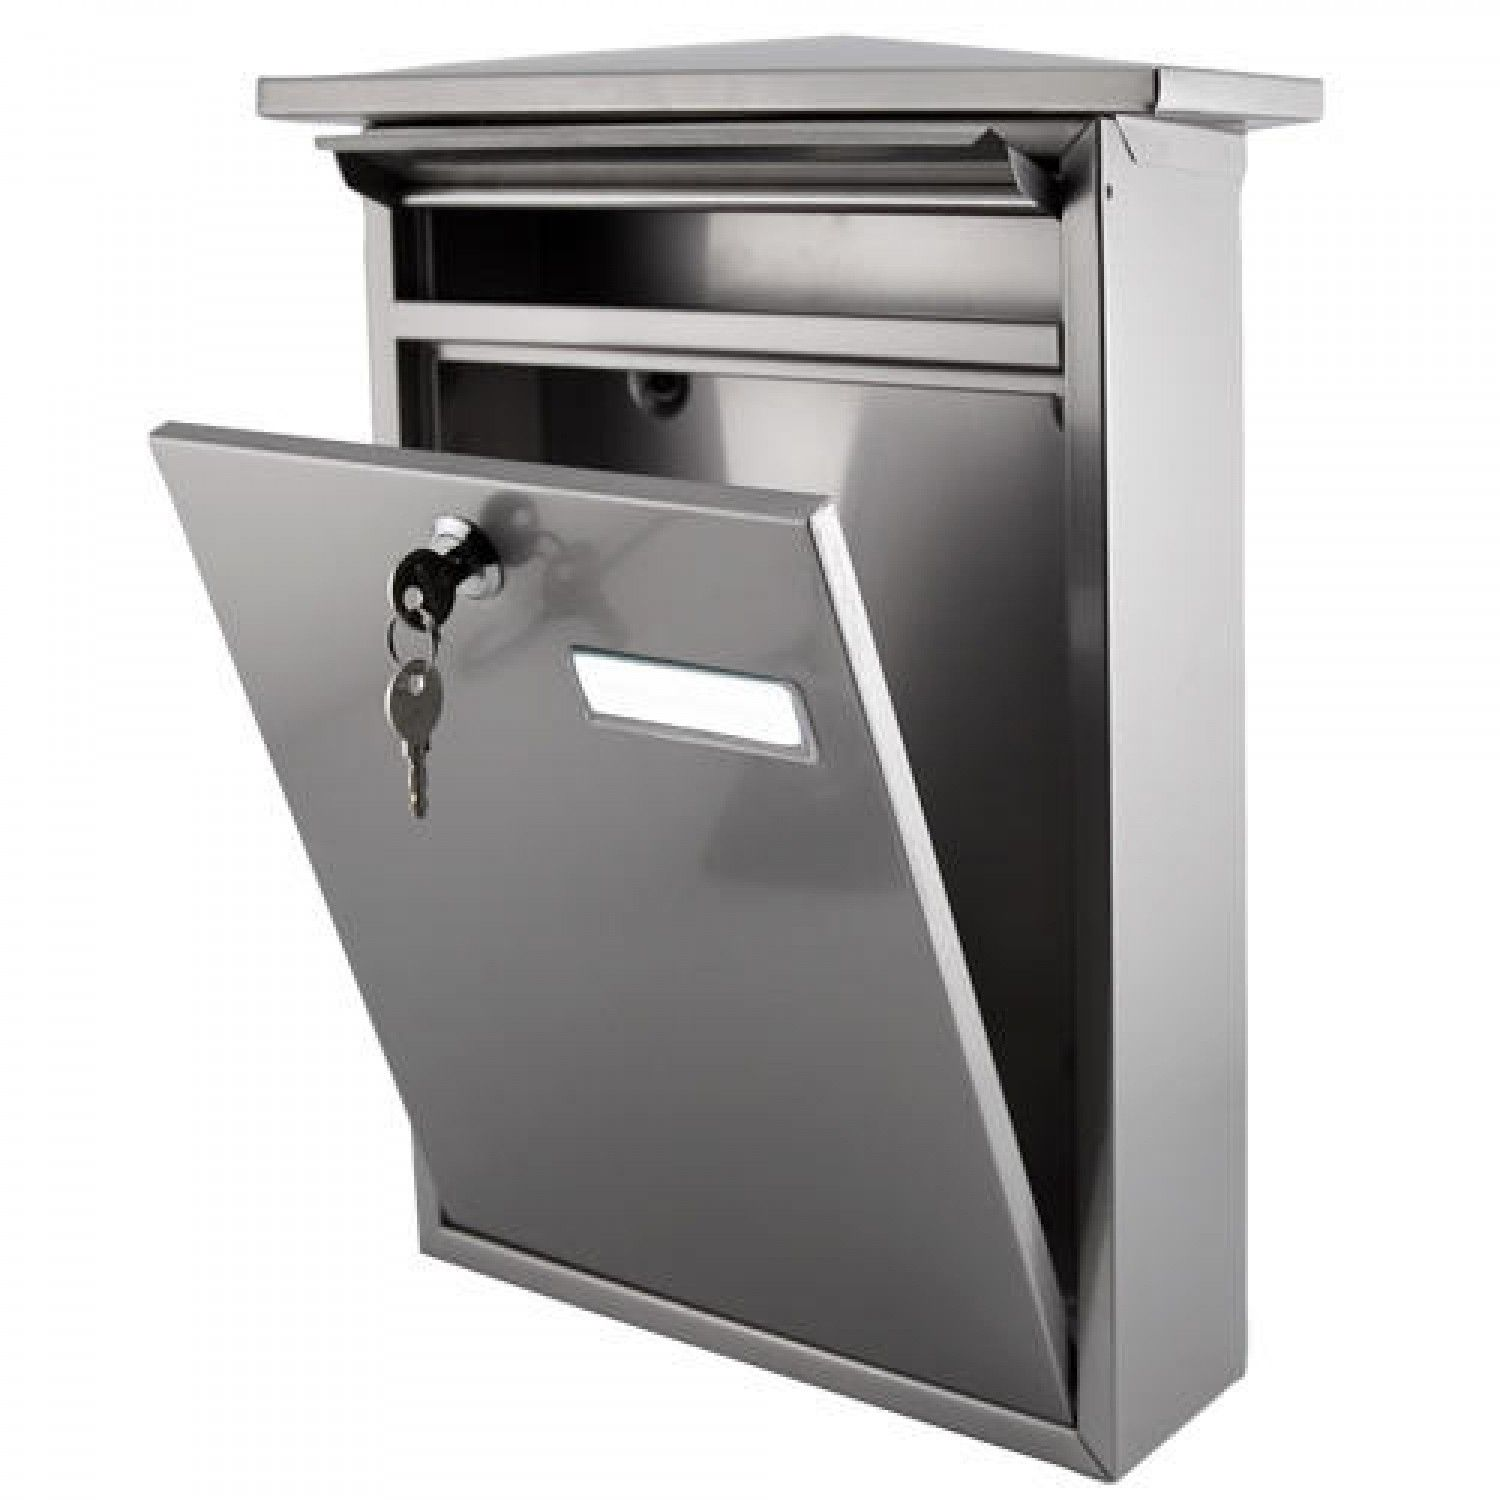 Mailbox stainless steel locking mail box letterbox postal box modern - Home Locking Wall Mount Mailbox Stainless Steel